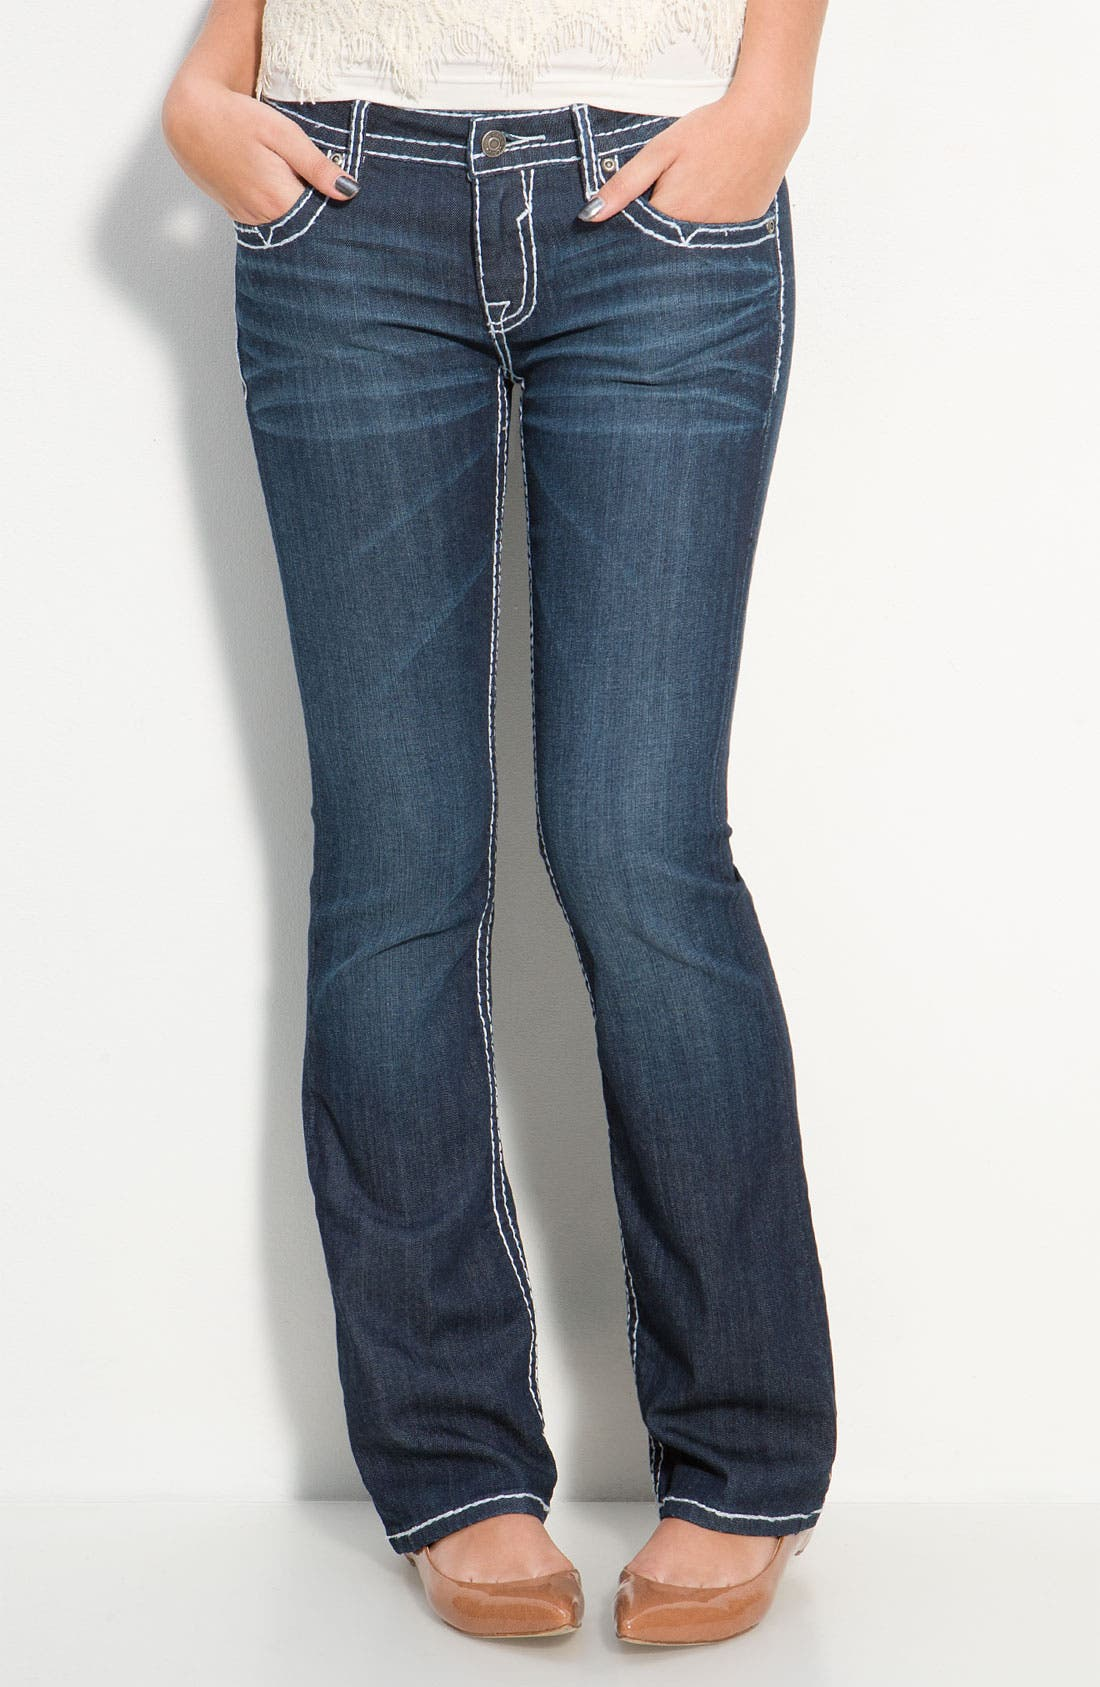 Alternate Image 1 Selected - Vigoss Thick Stitch Bootcut Jeans  (Juniors)